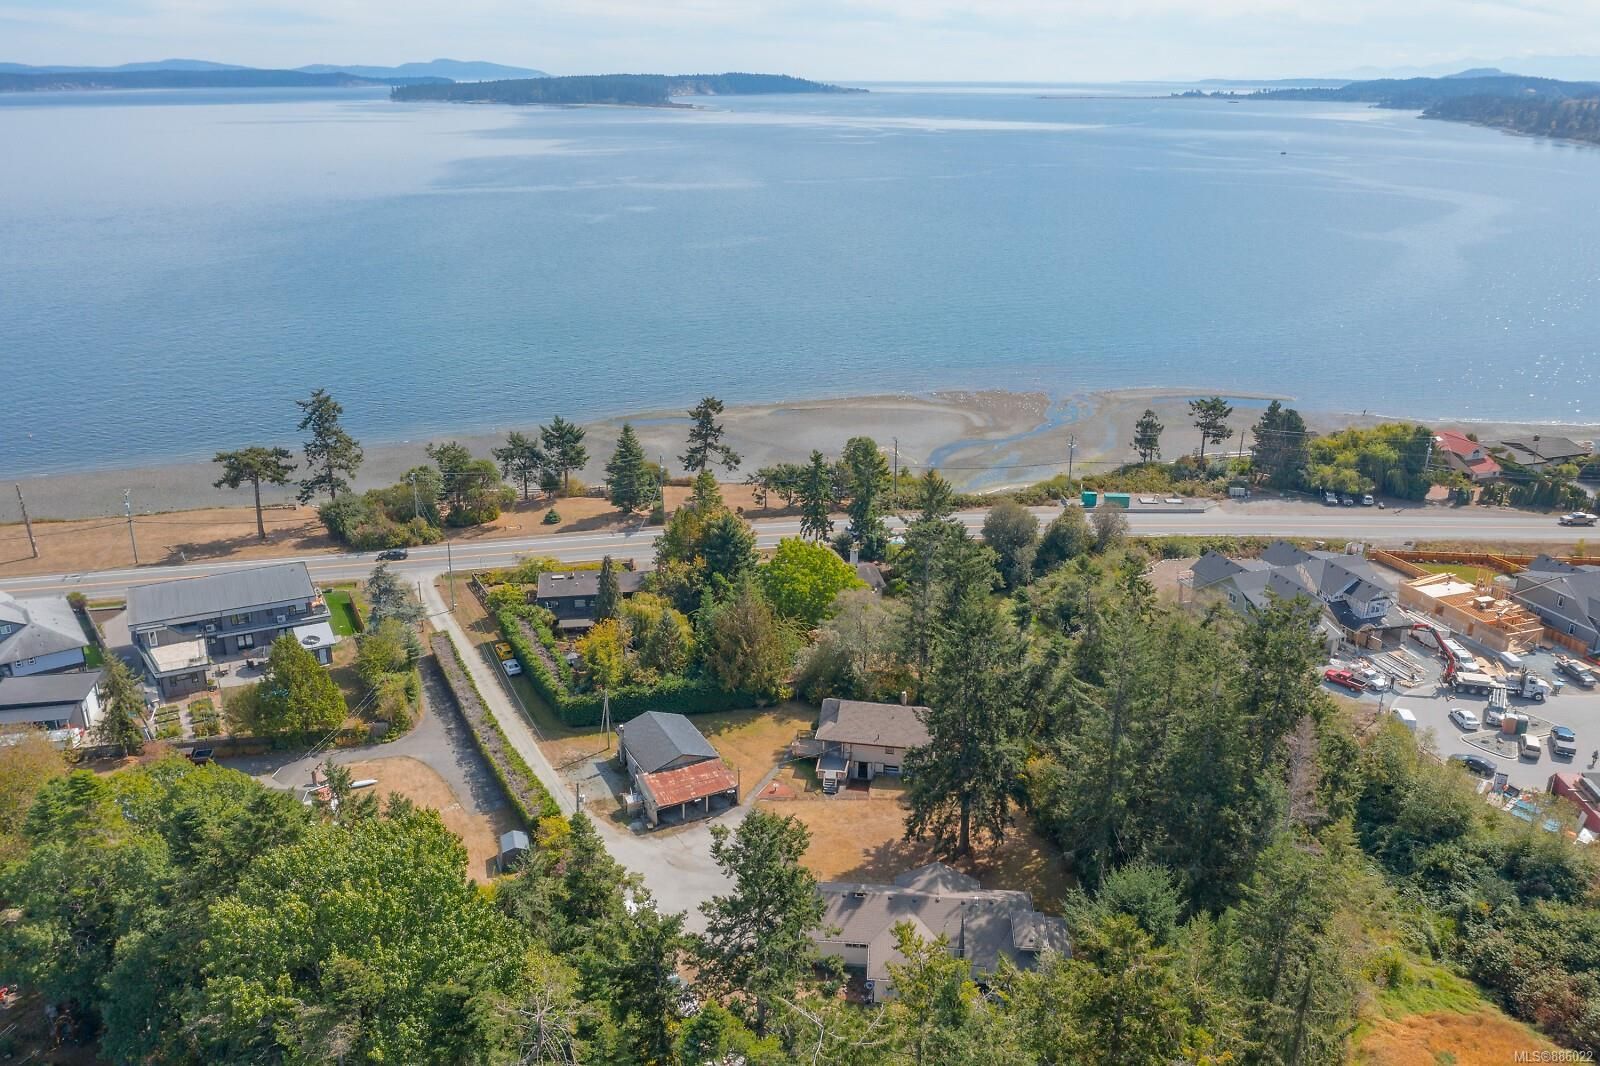 Main Photo: 9320/9316 Lochside Dr in : NS Bazan Bay House for sale (North Saanich)  : MLS®# 886022